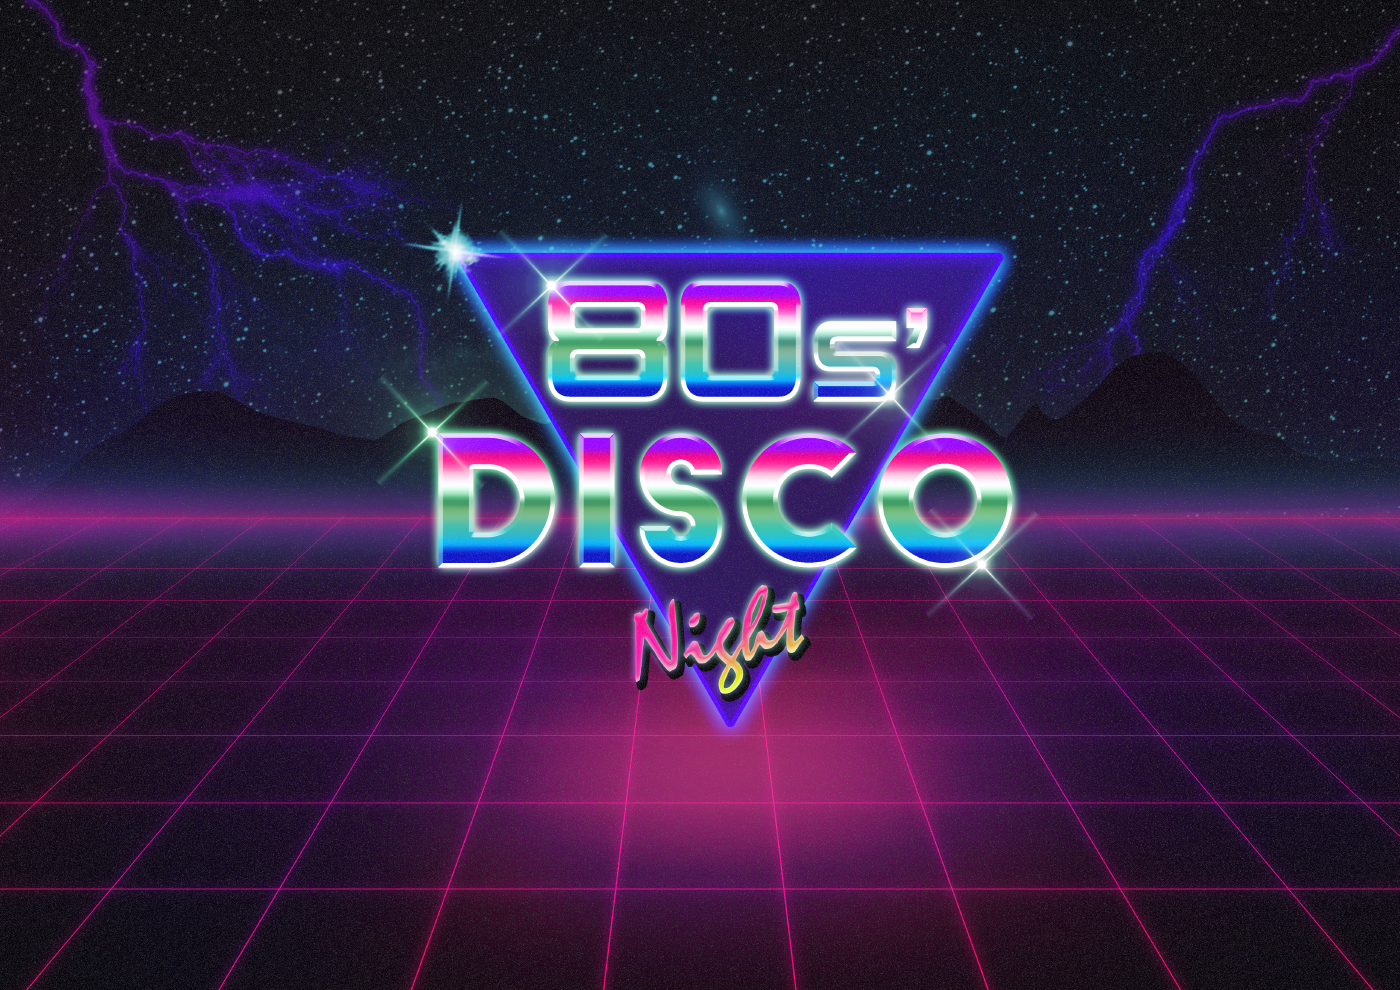 80s-disco-full-illustration